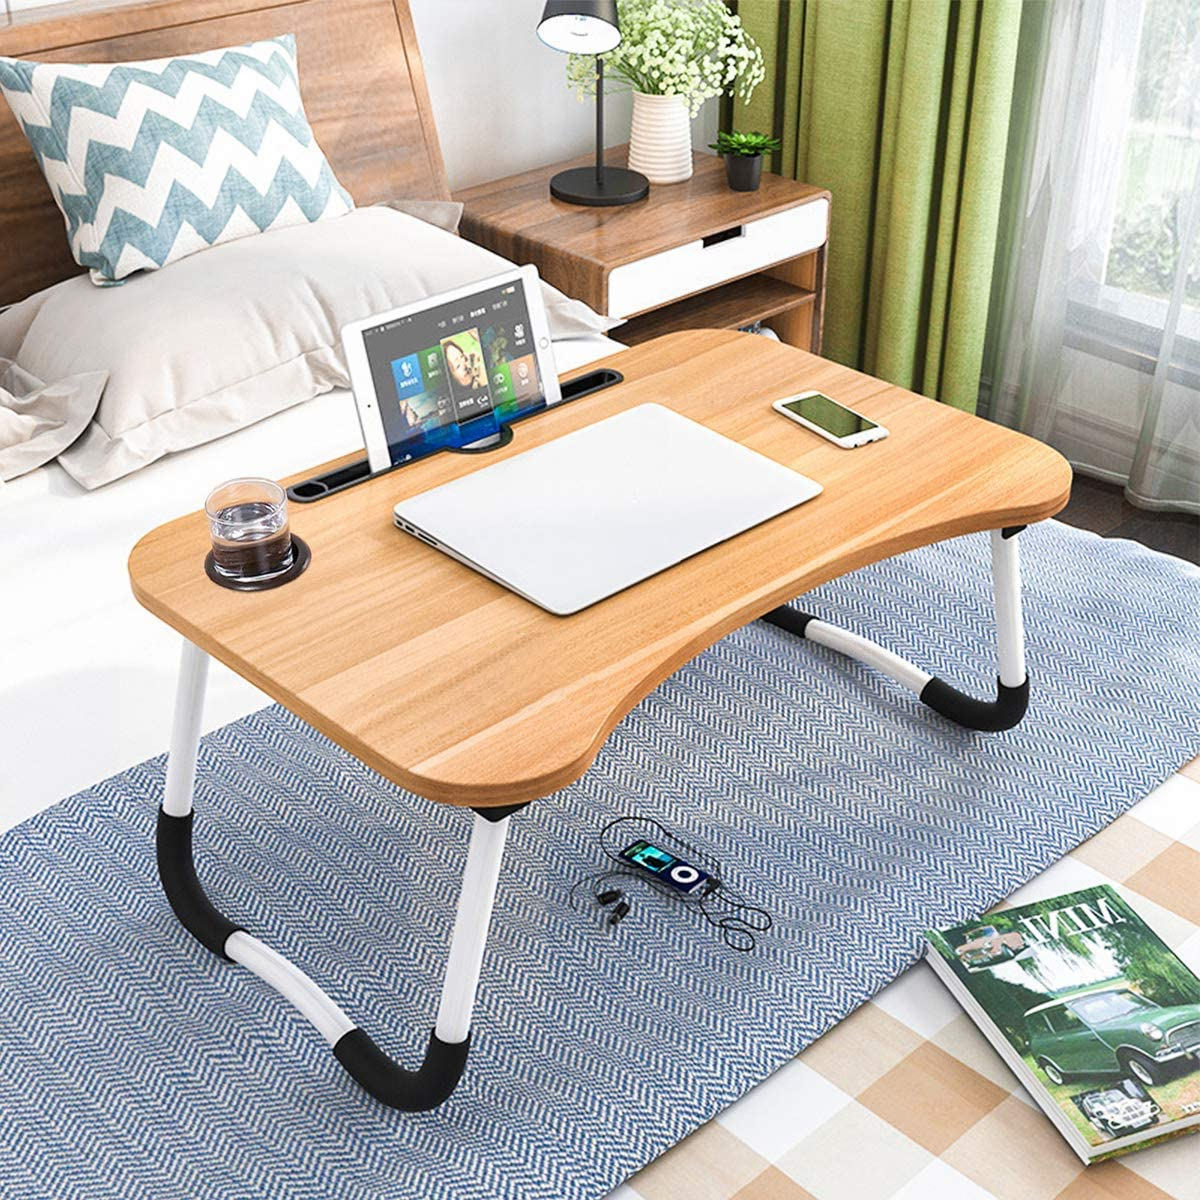 Foldable Laptop Table, CHARMDI Portable Laptop Bed Tray Table Folding Dormitory Table Notebook Stand Reading Holder Breakfast Serving Bed Tray with Tablet Slots & Cup Holder for Bed/Couch/Sofa-Golden